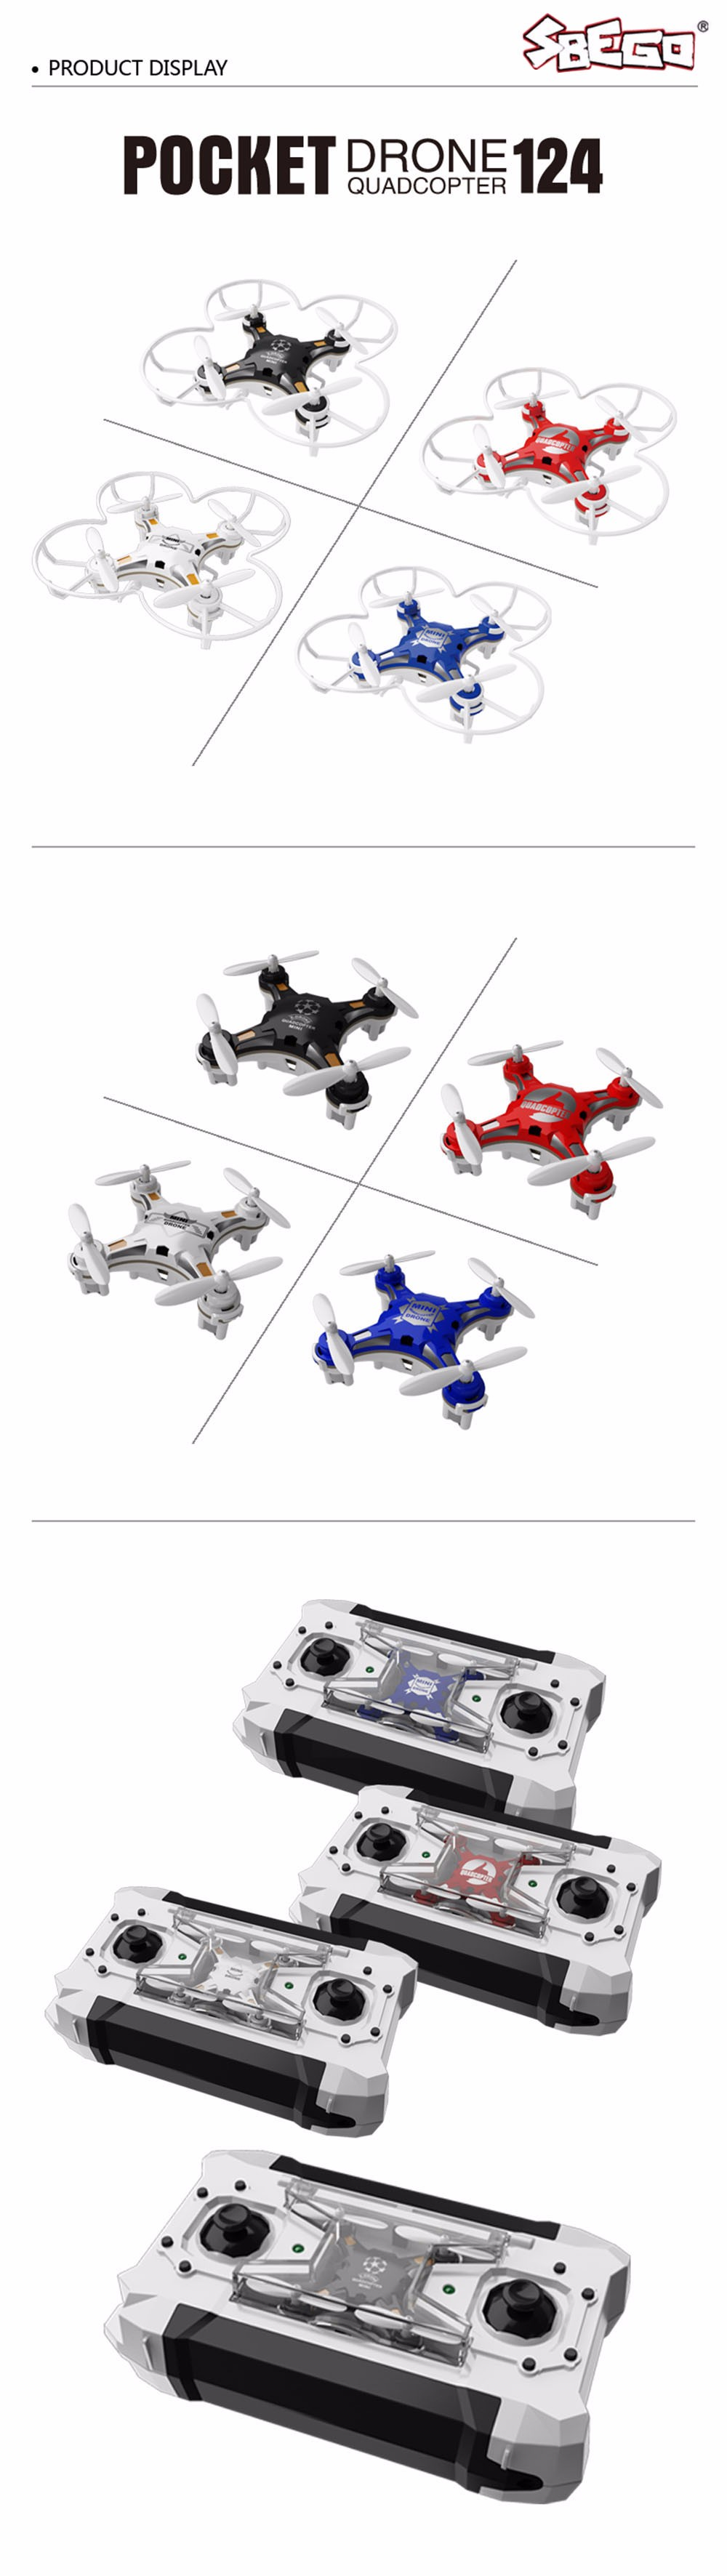 SBEGO FQ777-124 Mini Drone Micro Pocket 4CH 6Axis Gyro Switchable Controller RC Helicopter Kids Toys VS JJRC H37 H31 Quadcopter 16